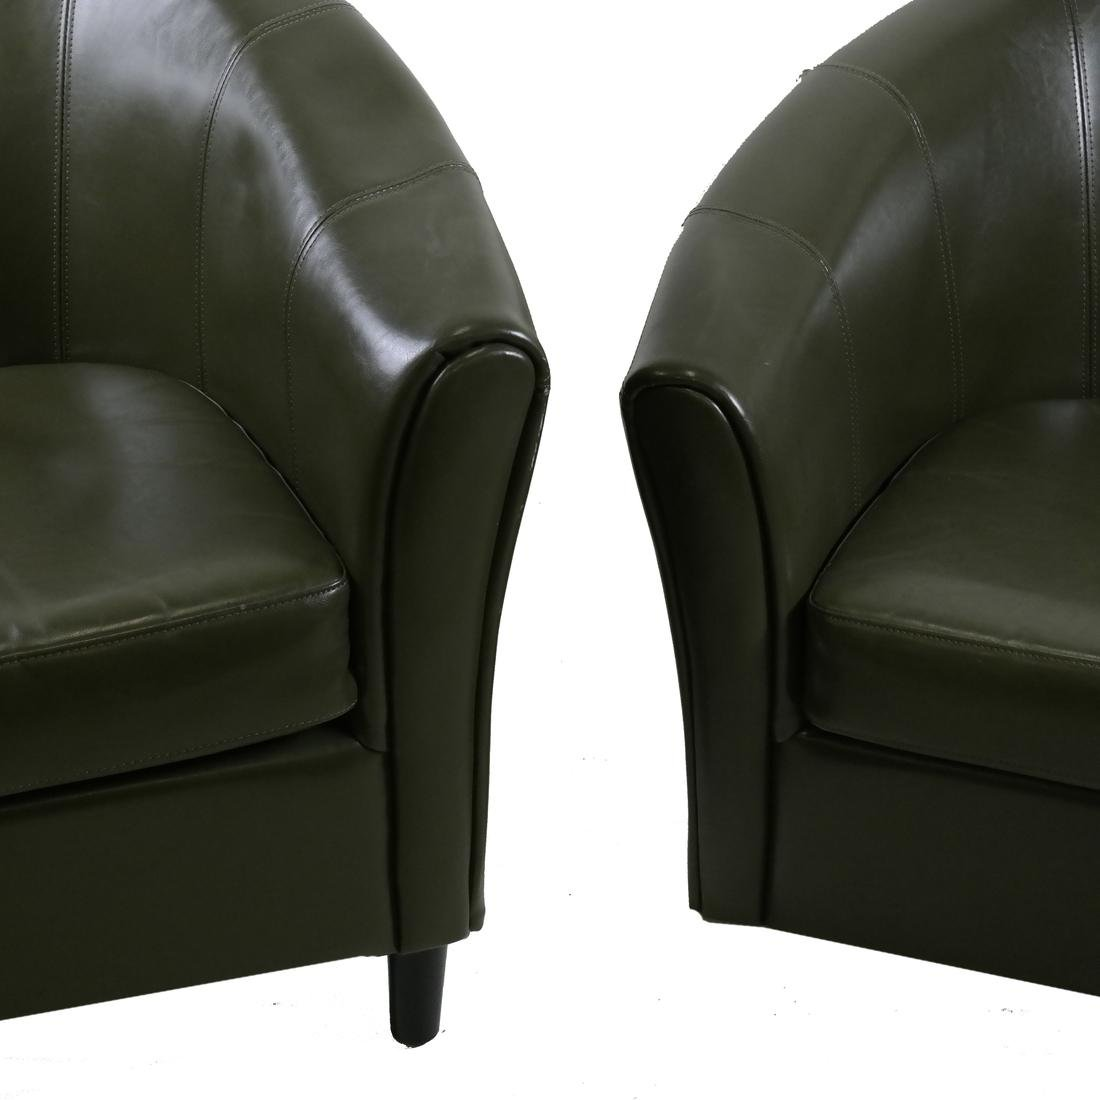 Pair of Green Club Chairs - 2